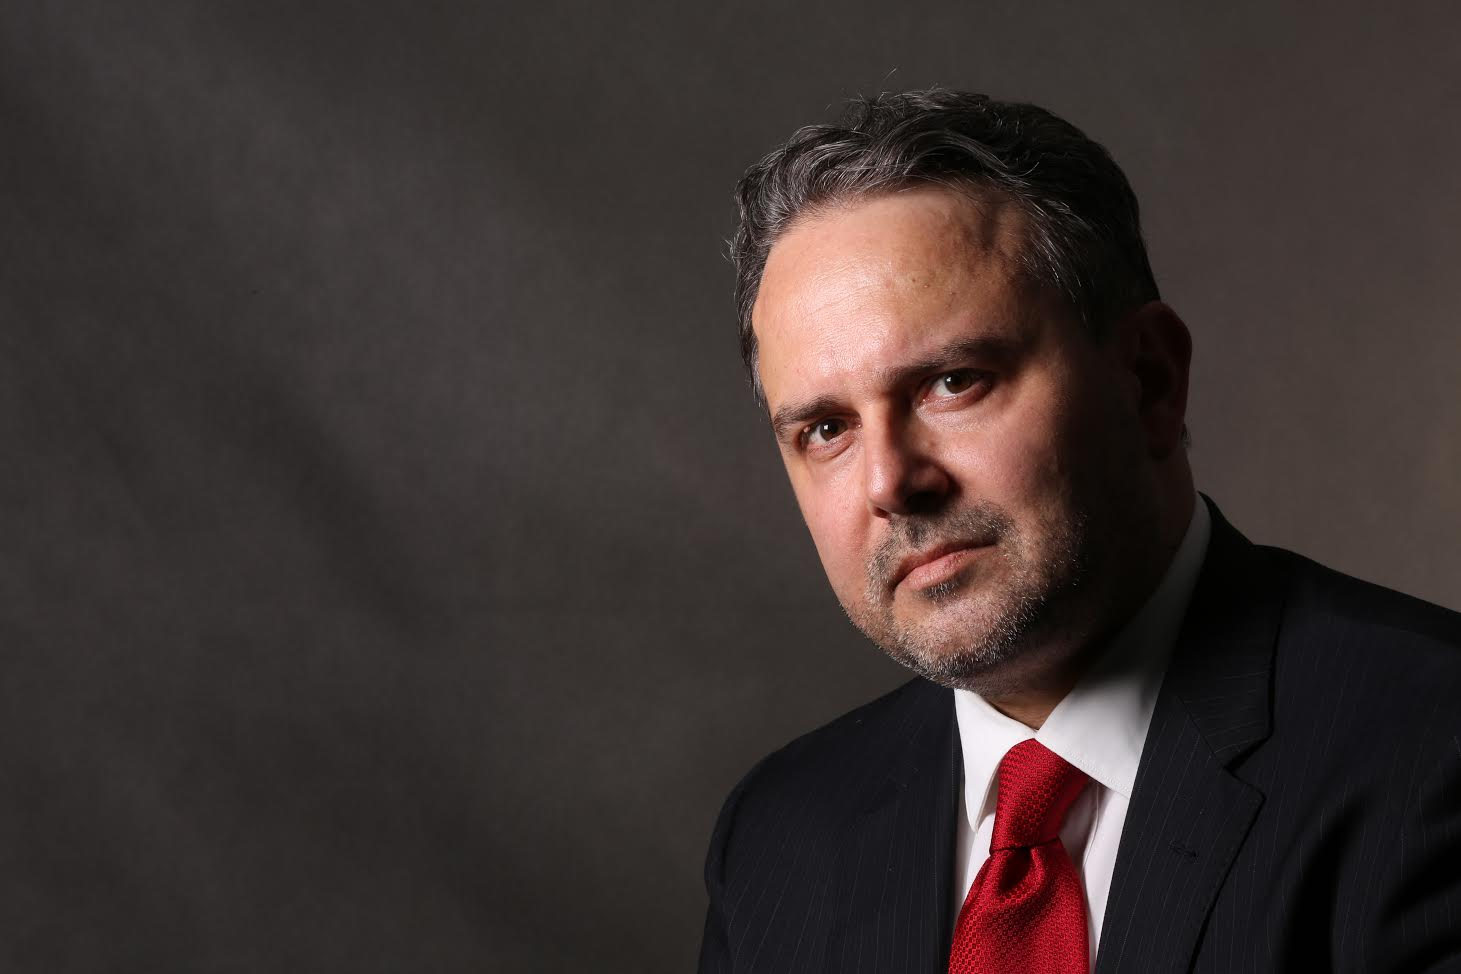 Former Chief of the Foreign Intelligence Agency of Poland Grzegorz Małecki became an expert of the Casimir Pulaski Foundation